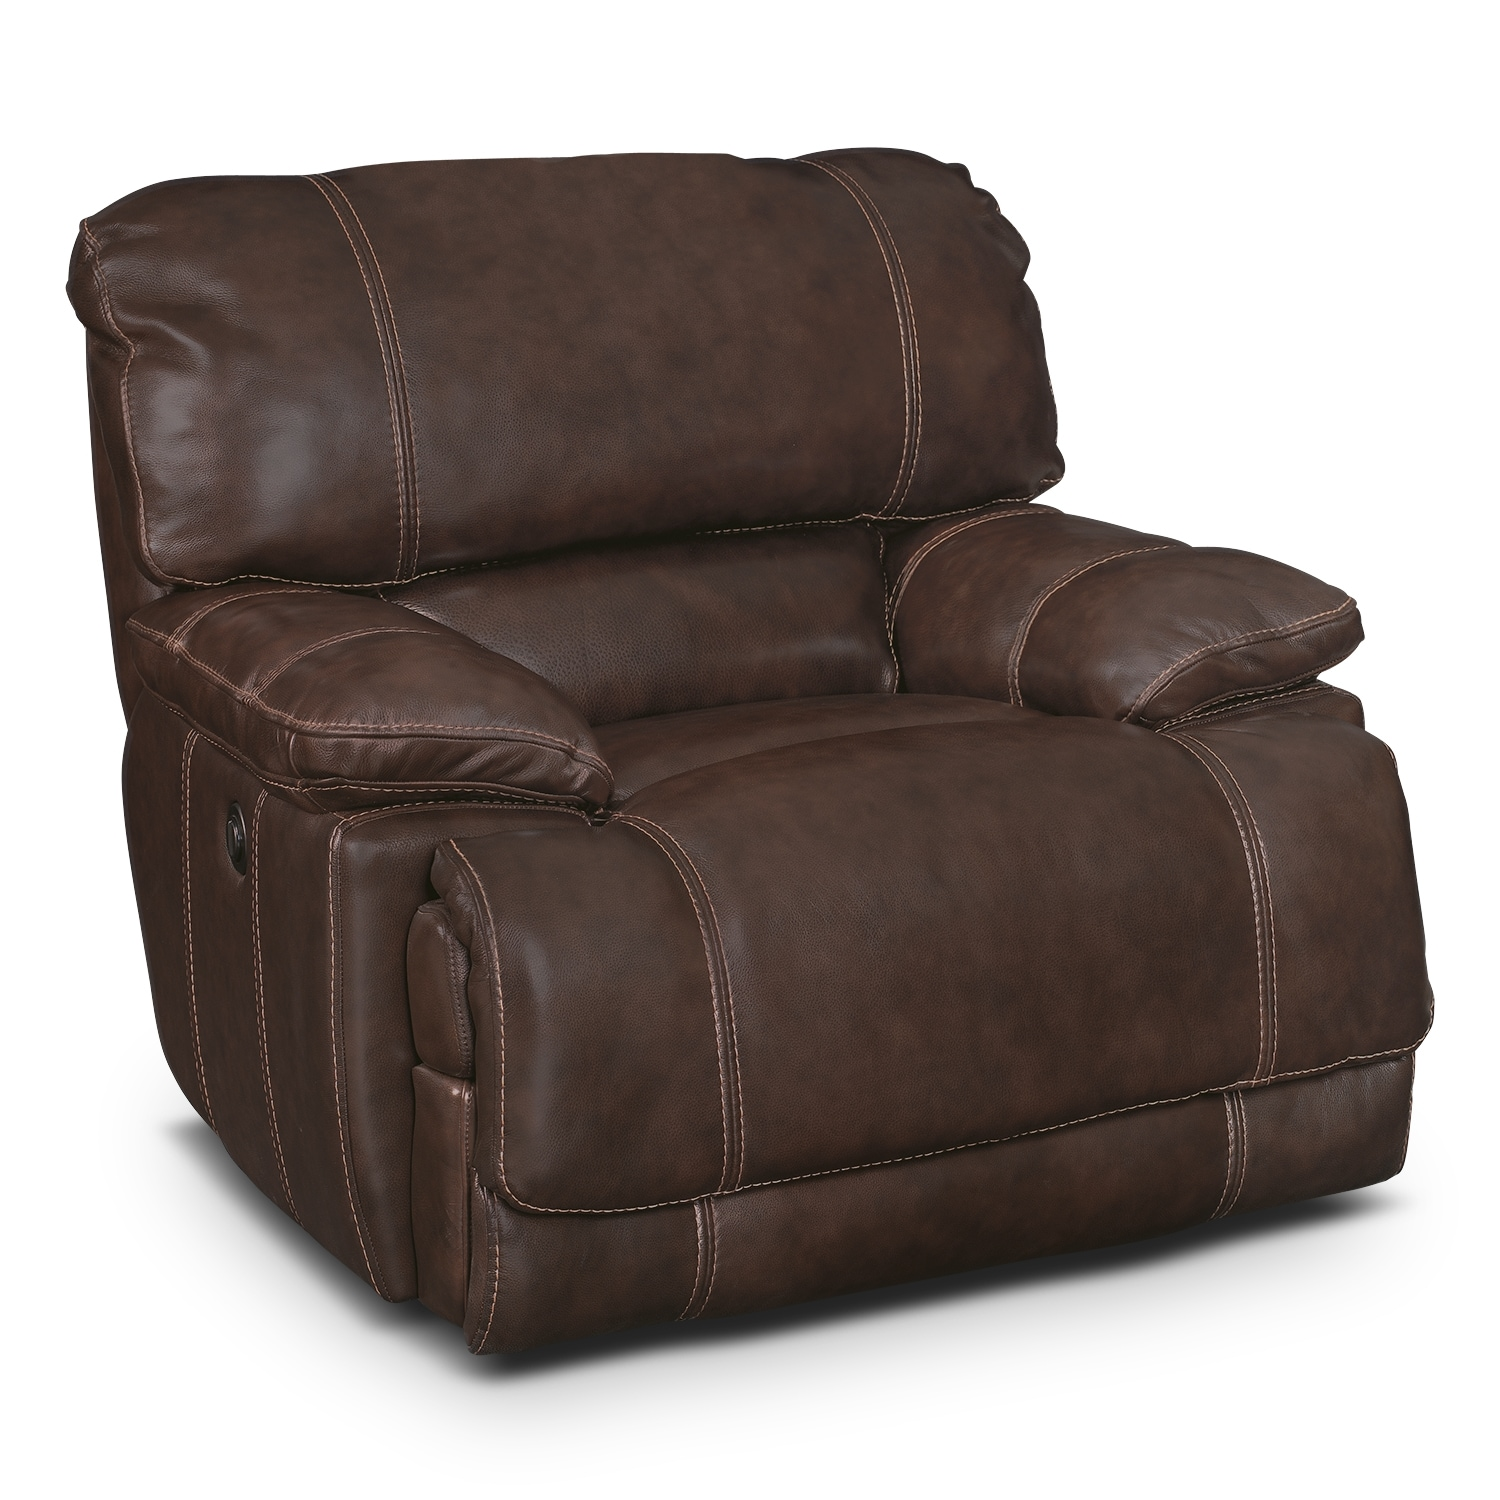 Power Reclining Chairs St Malo Power Recliner Value City Furniture